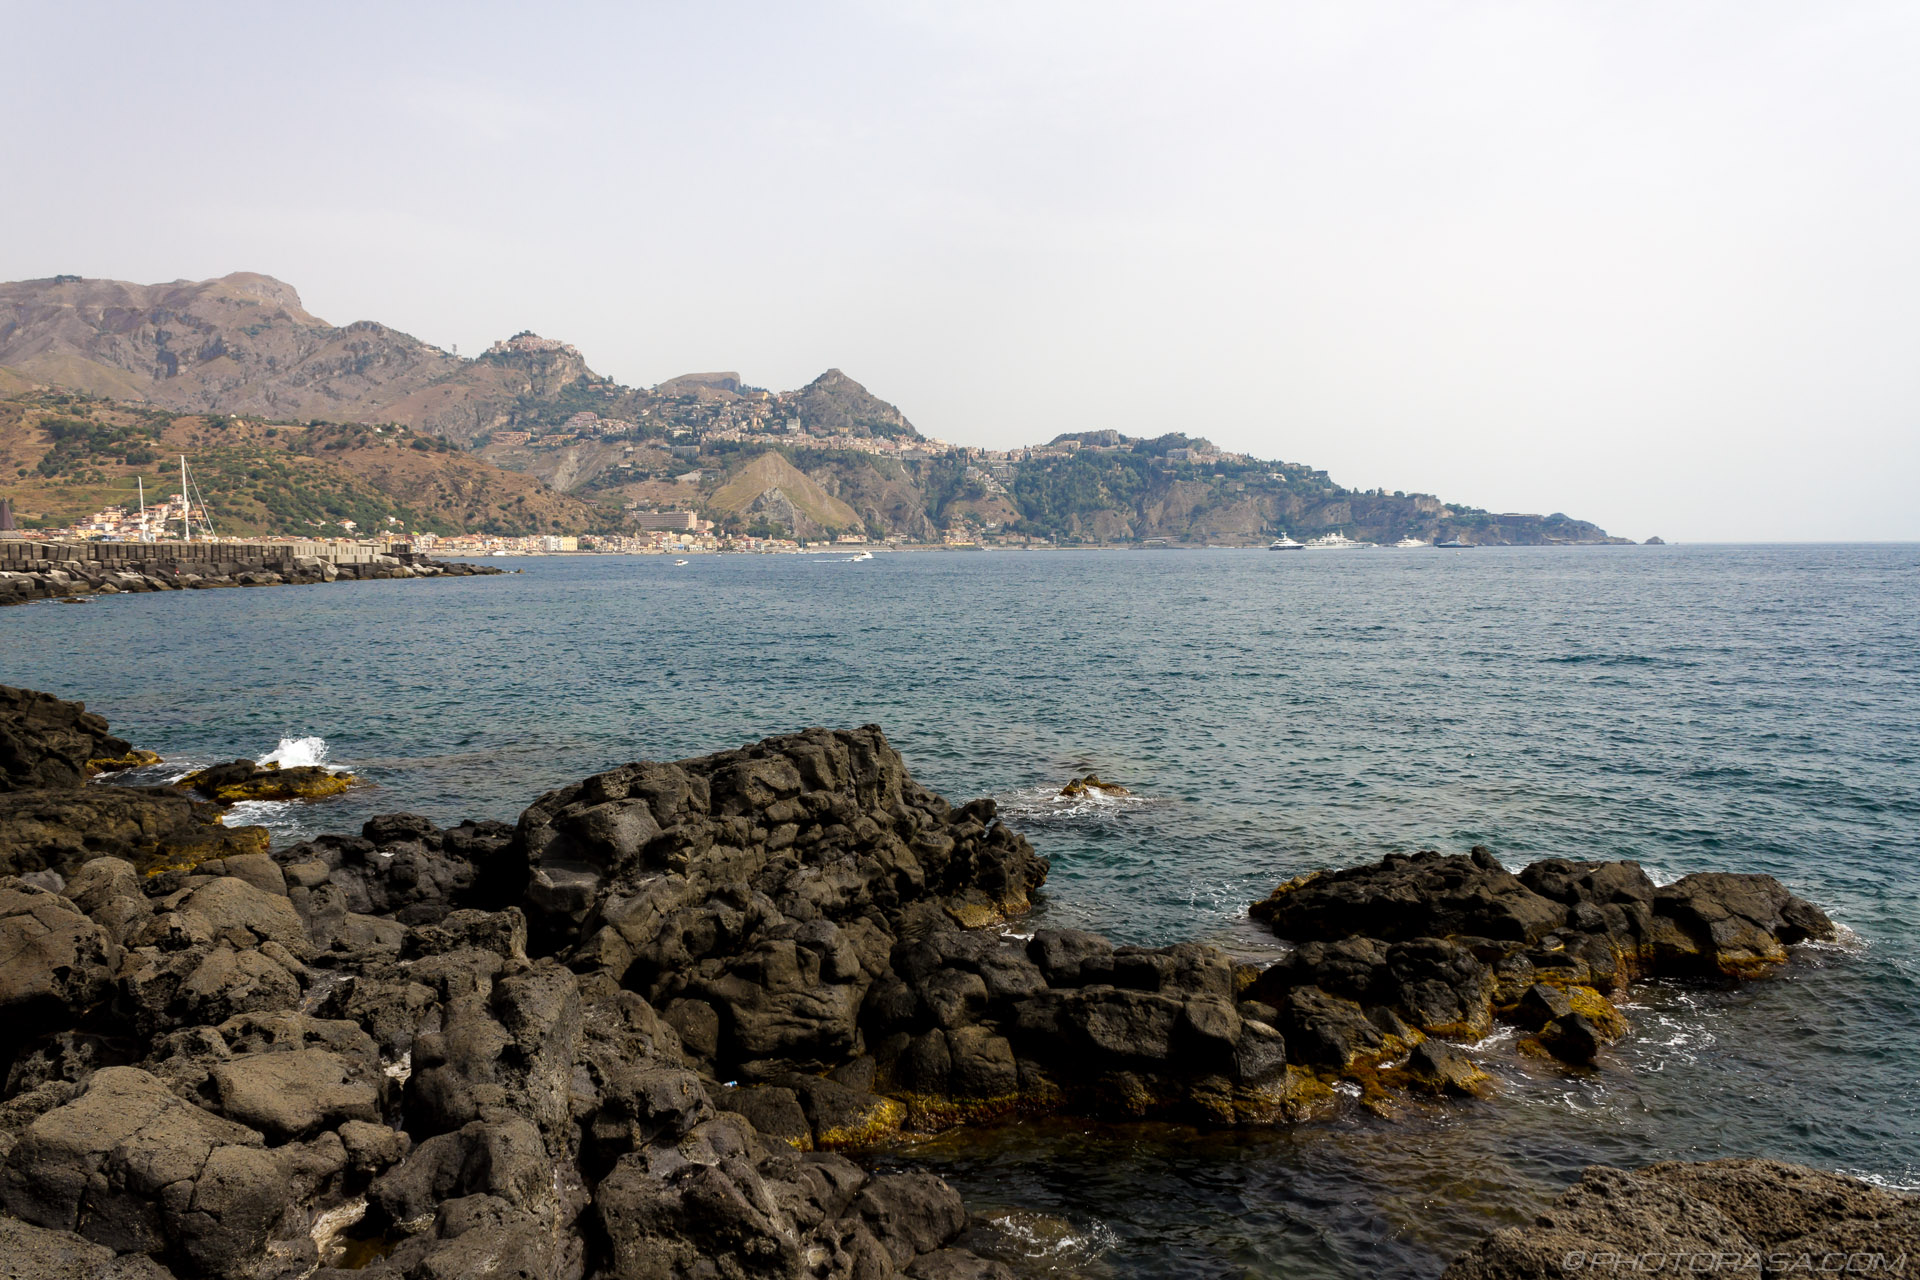 https://photorasa.com/giardini-naxos/giardini-naxos-coast-and-lava-rocks/